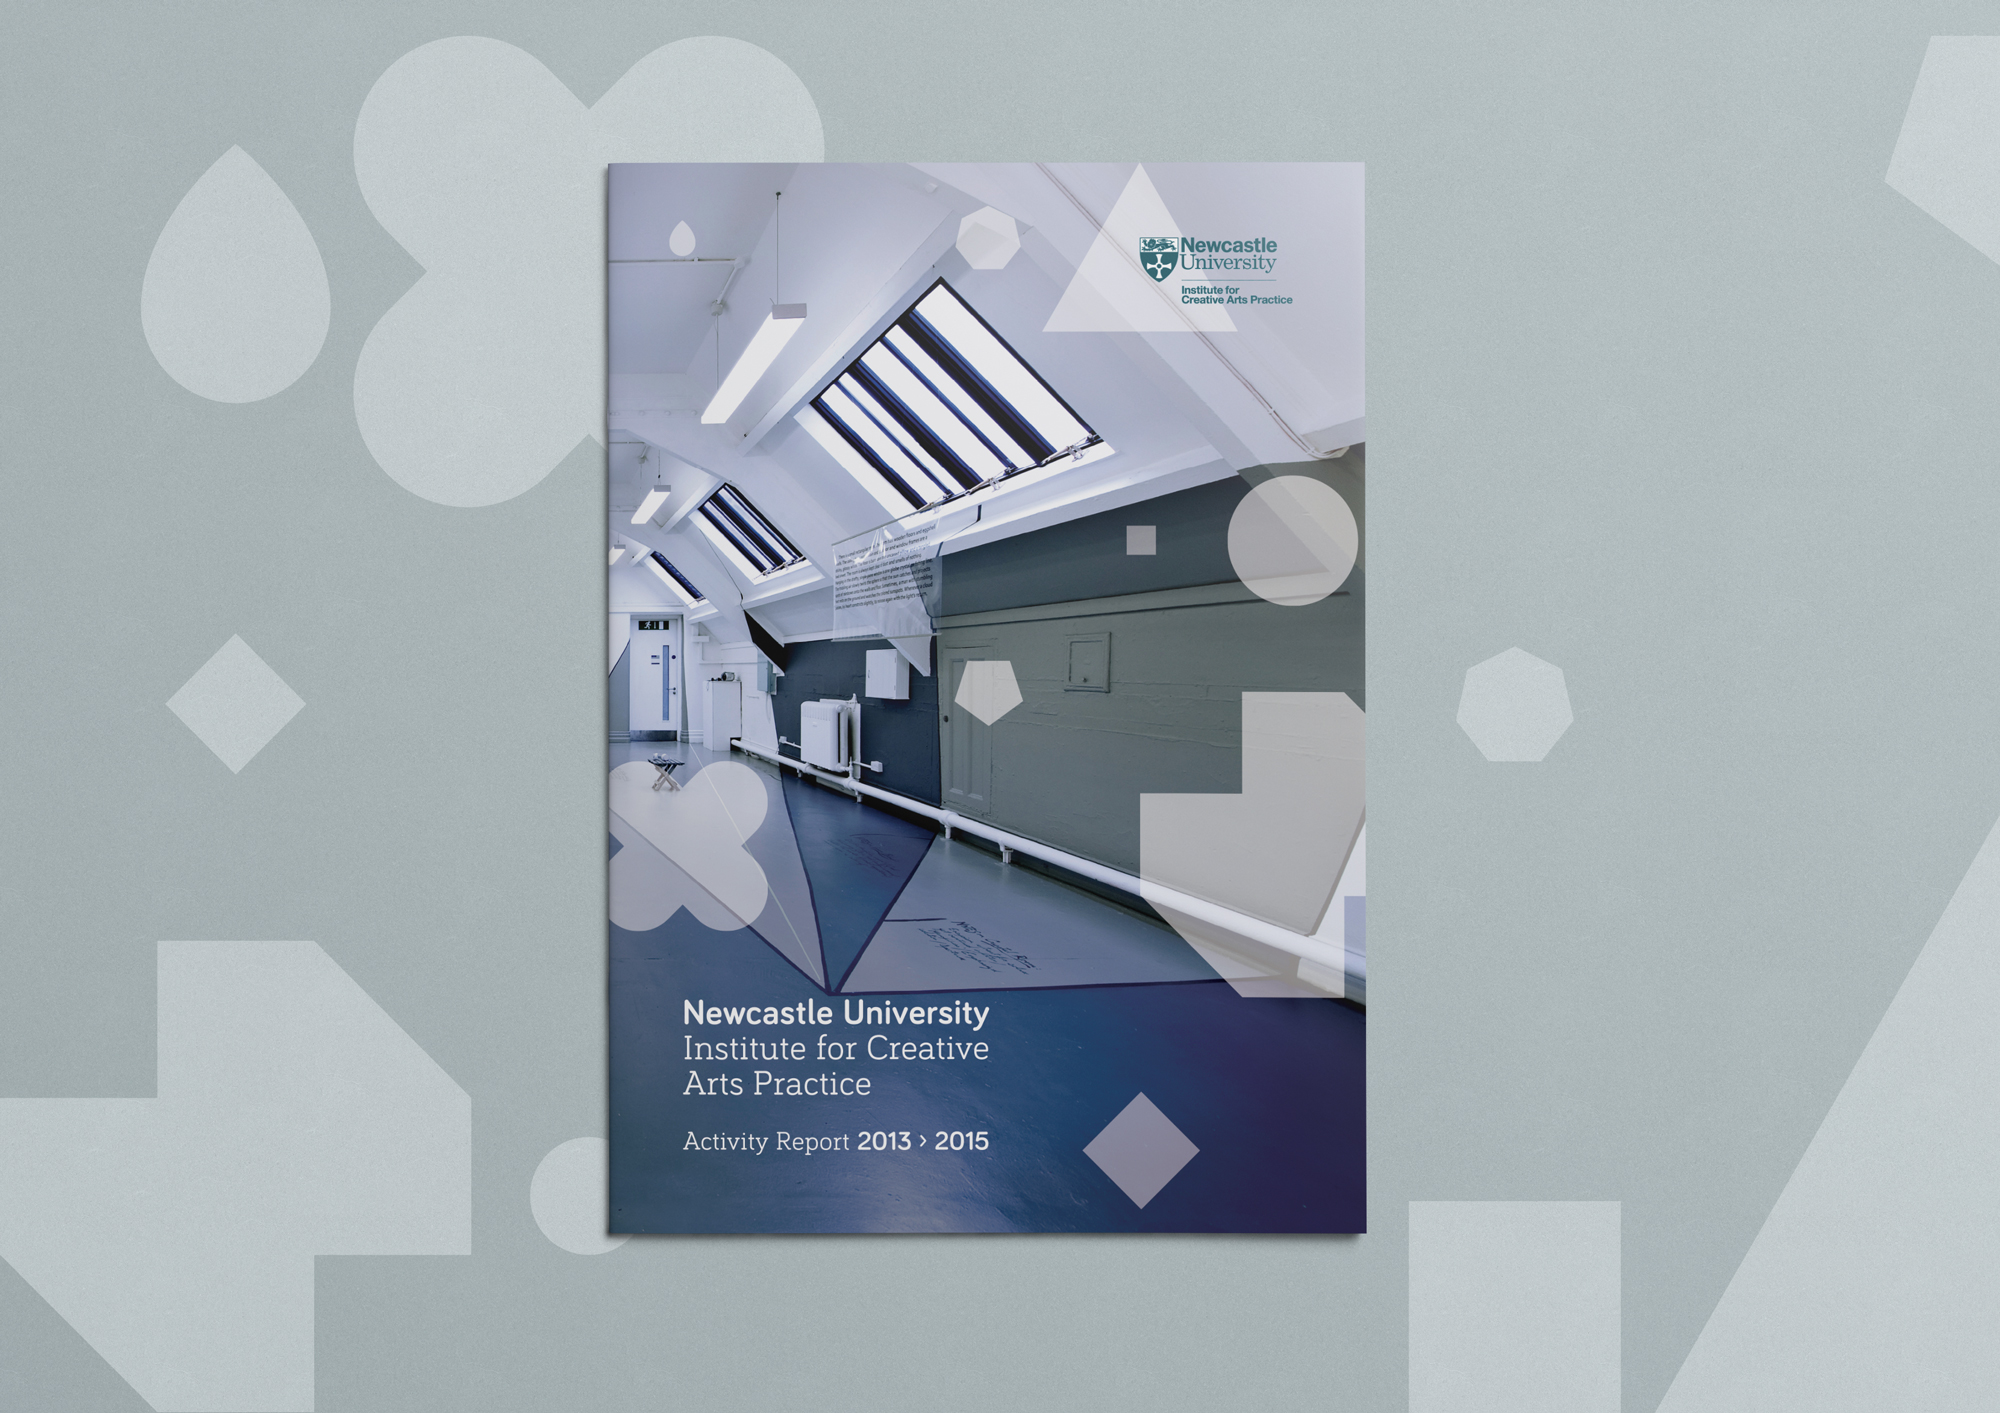 Cover image: Institute for Creative Arts Practice Activity Report